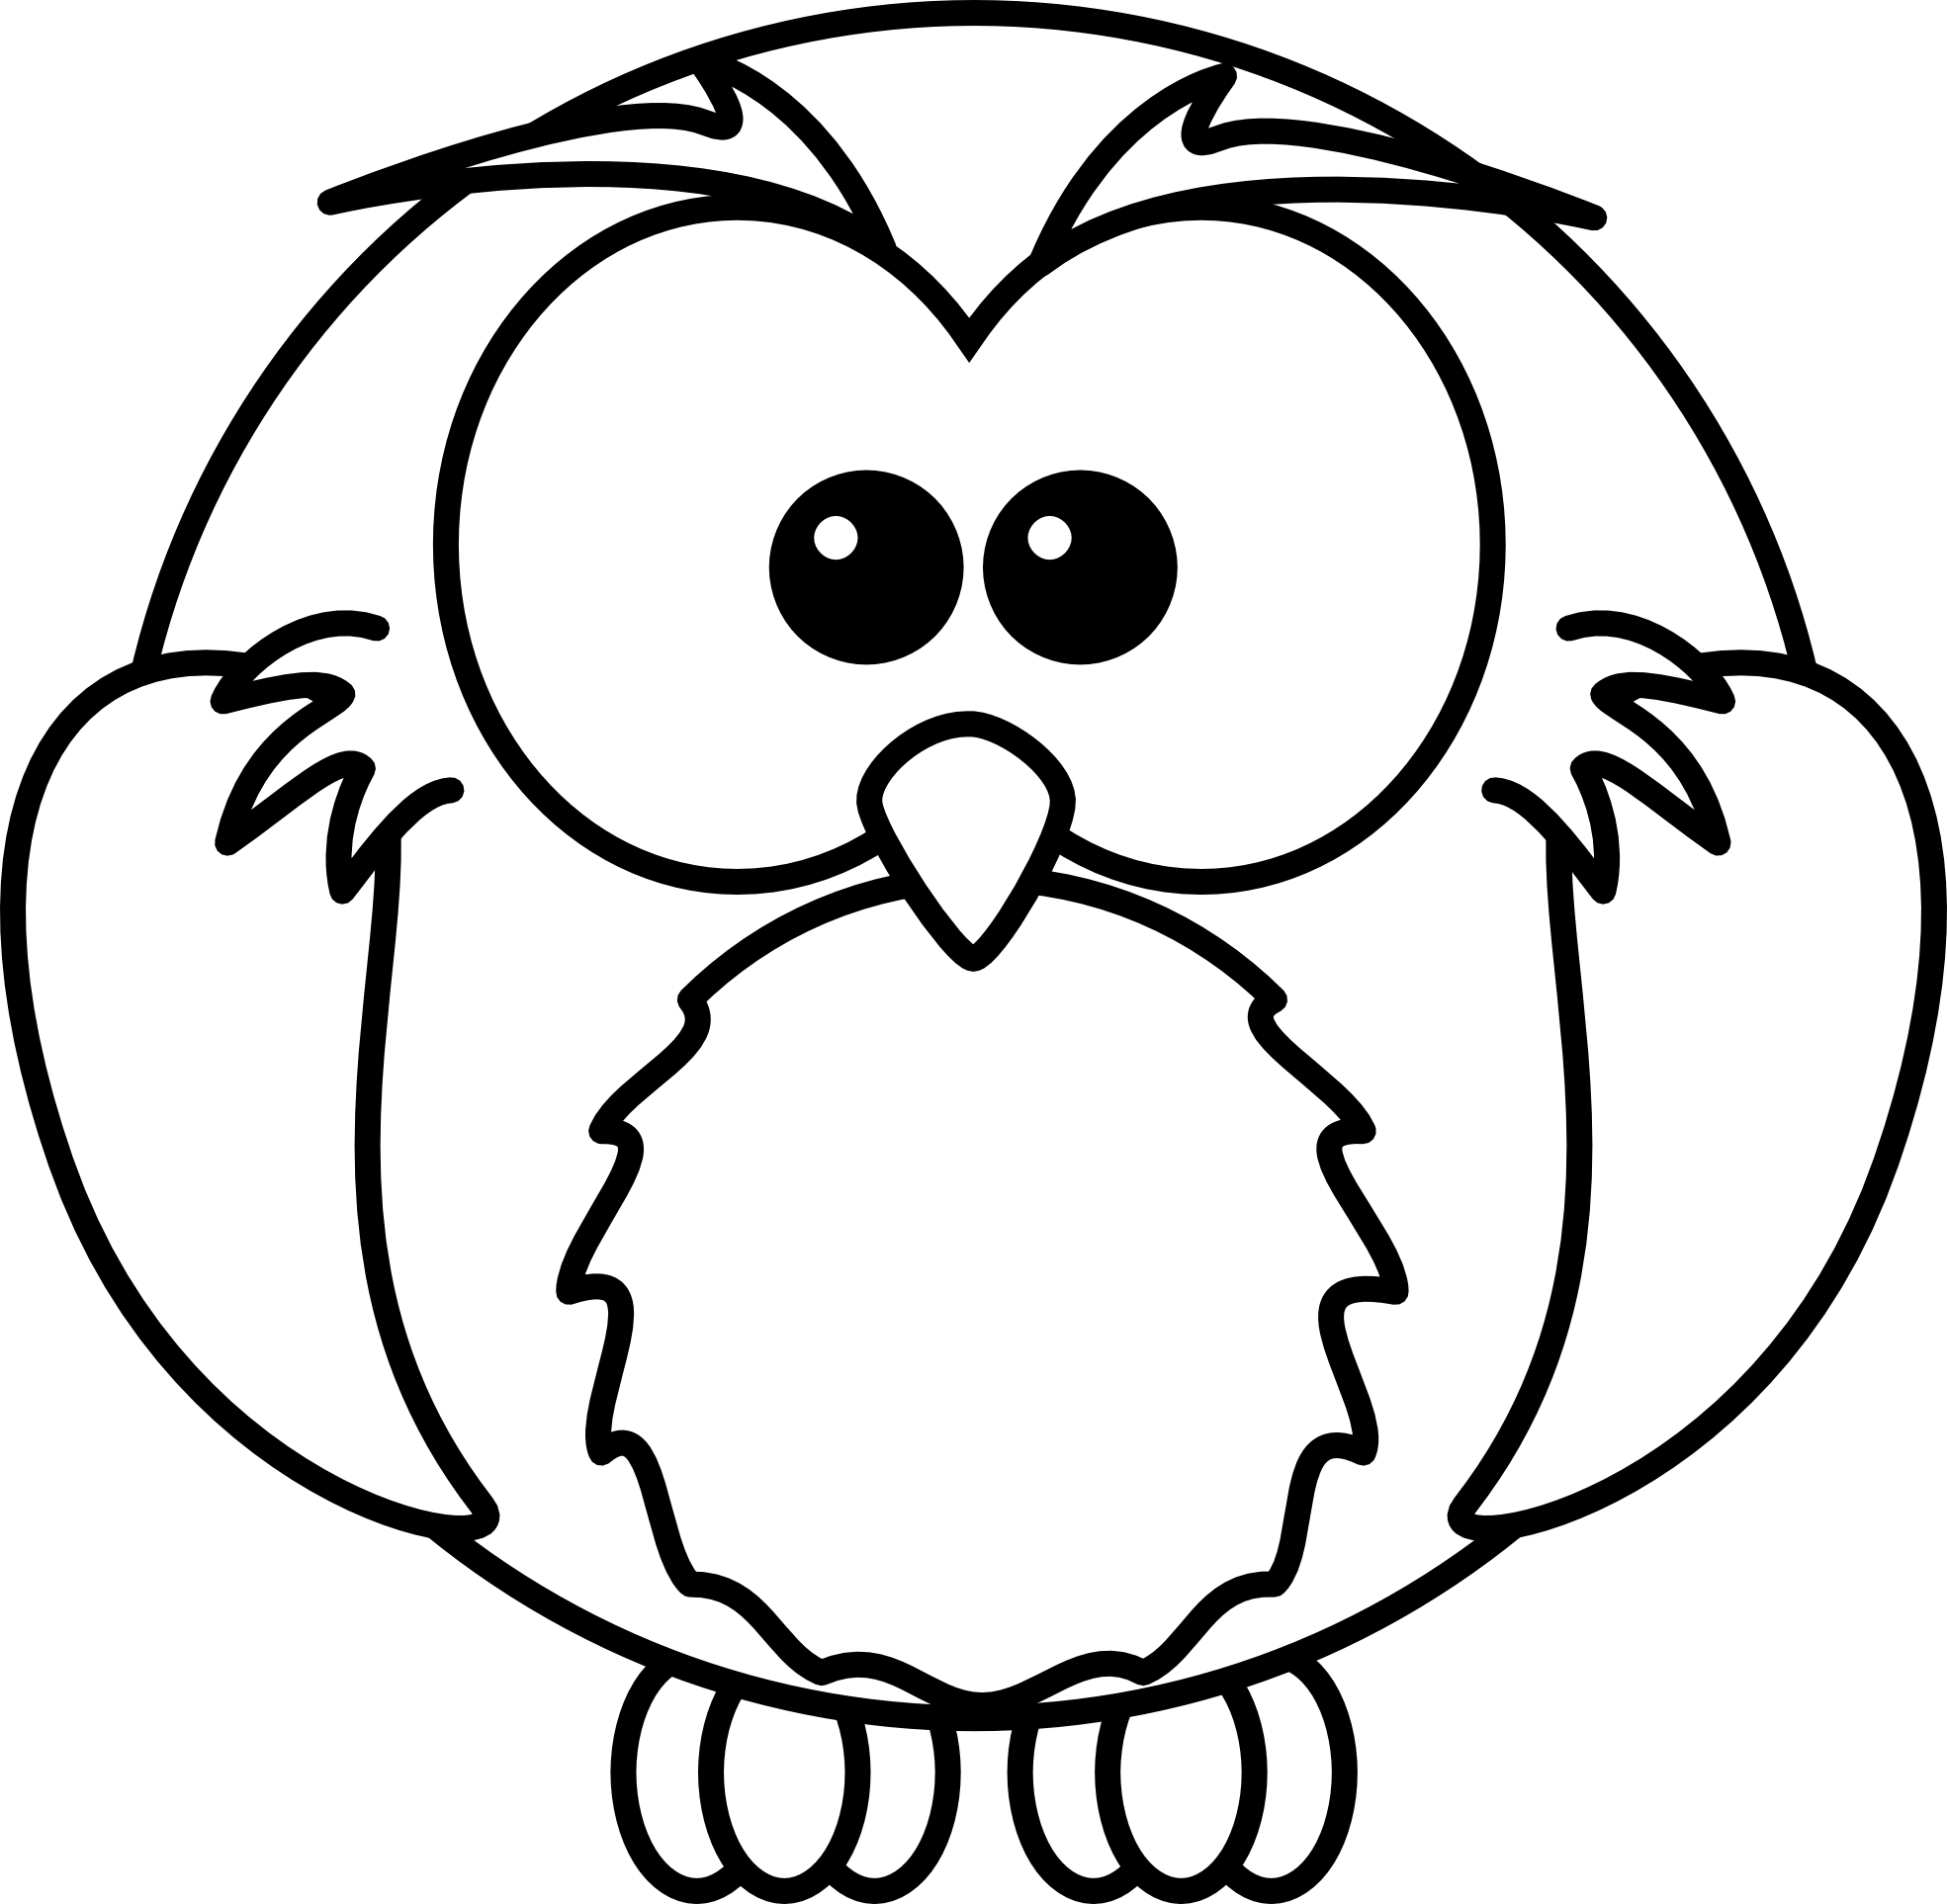 Owl turkey clipart vector freeuse download Lion Clip Art Black And White | Clipart Panda - Free Clipart Images vector freeuse download